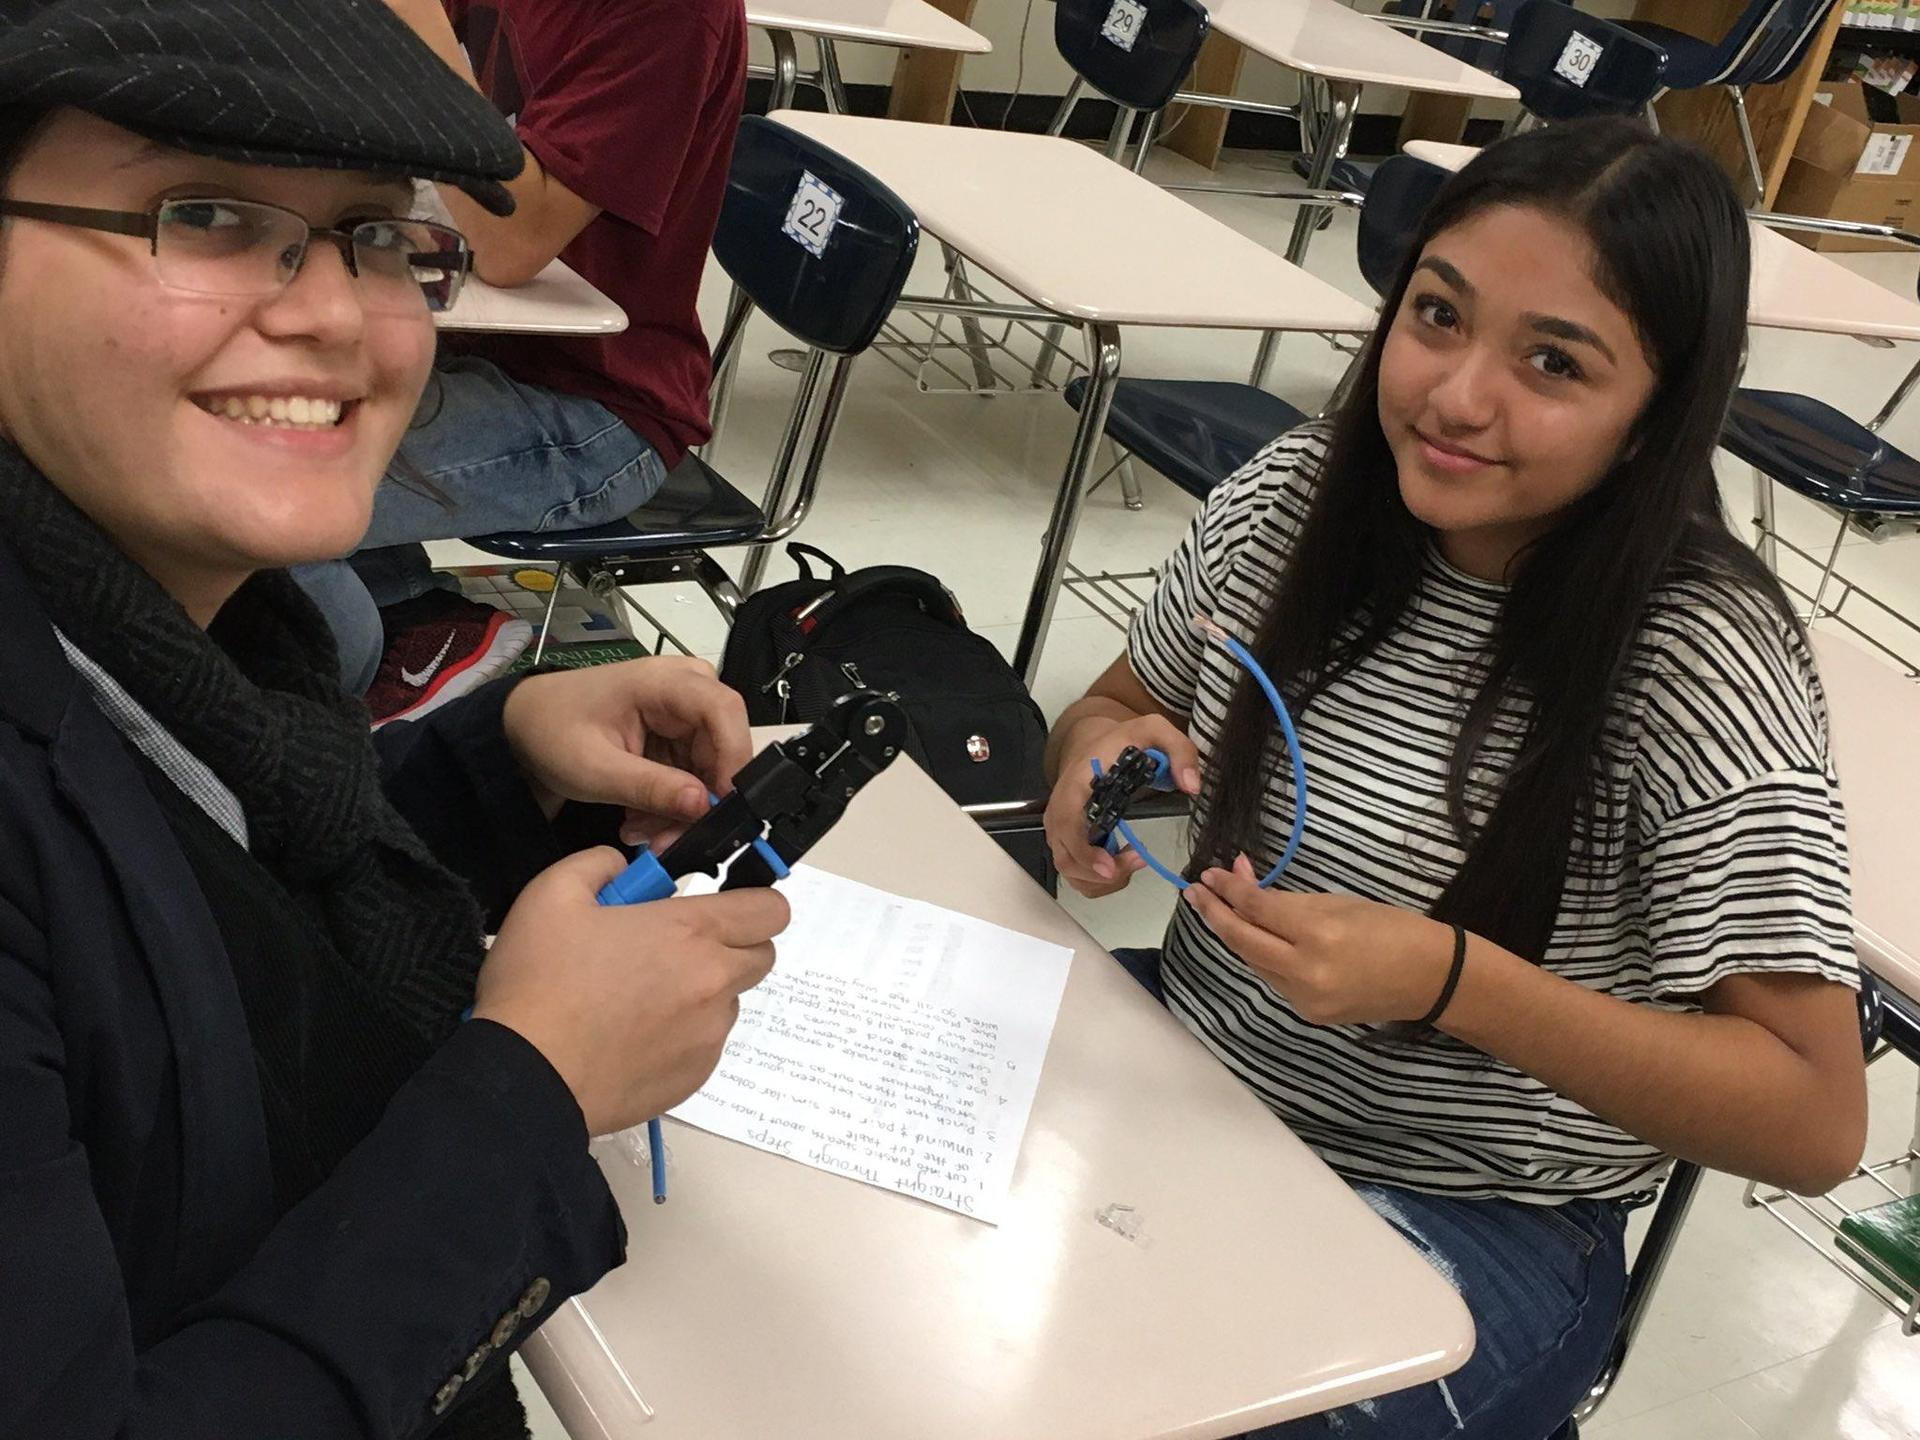 two students holding pliers and snipping a wire